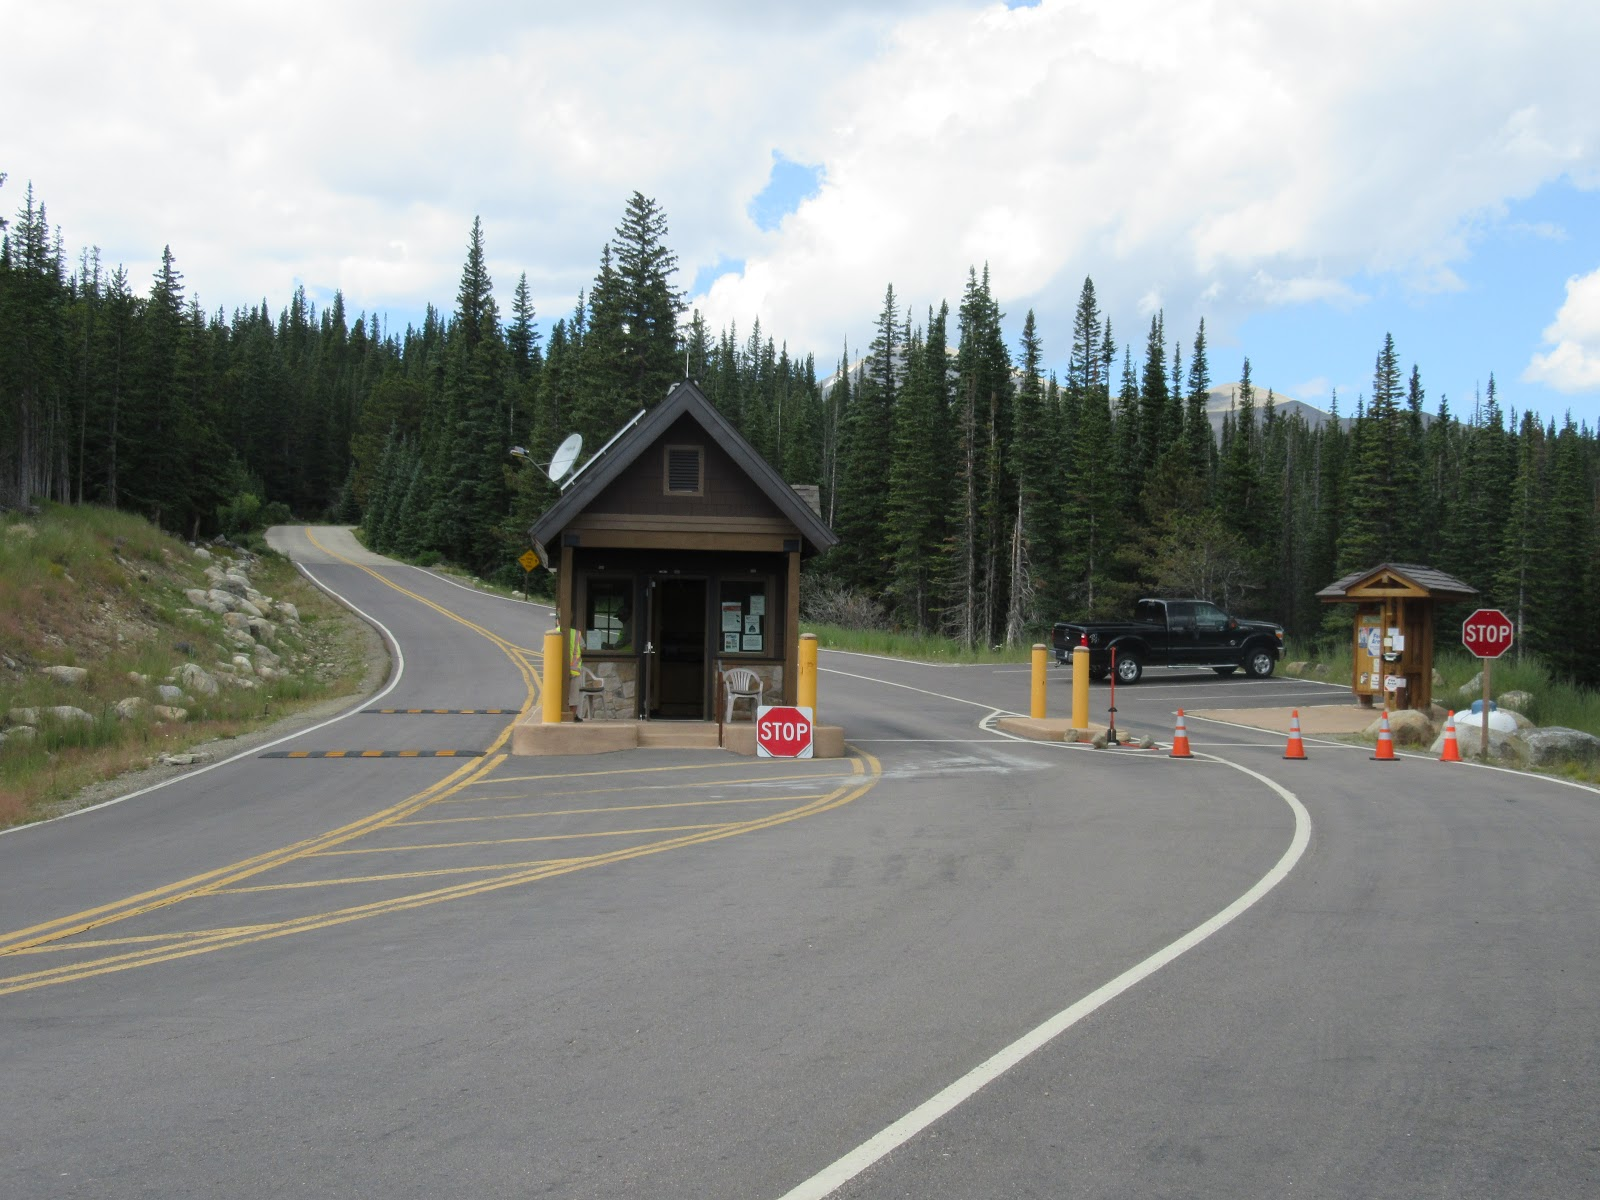 Bicycle ride up Left Hand Canyon - park entrance and toll booth